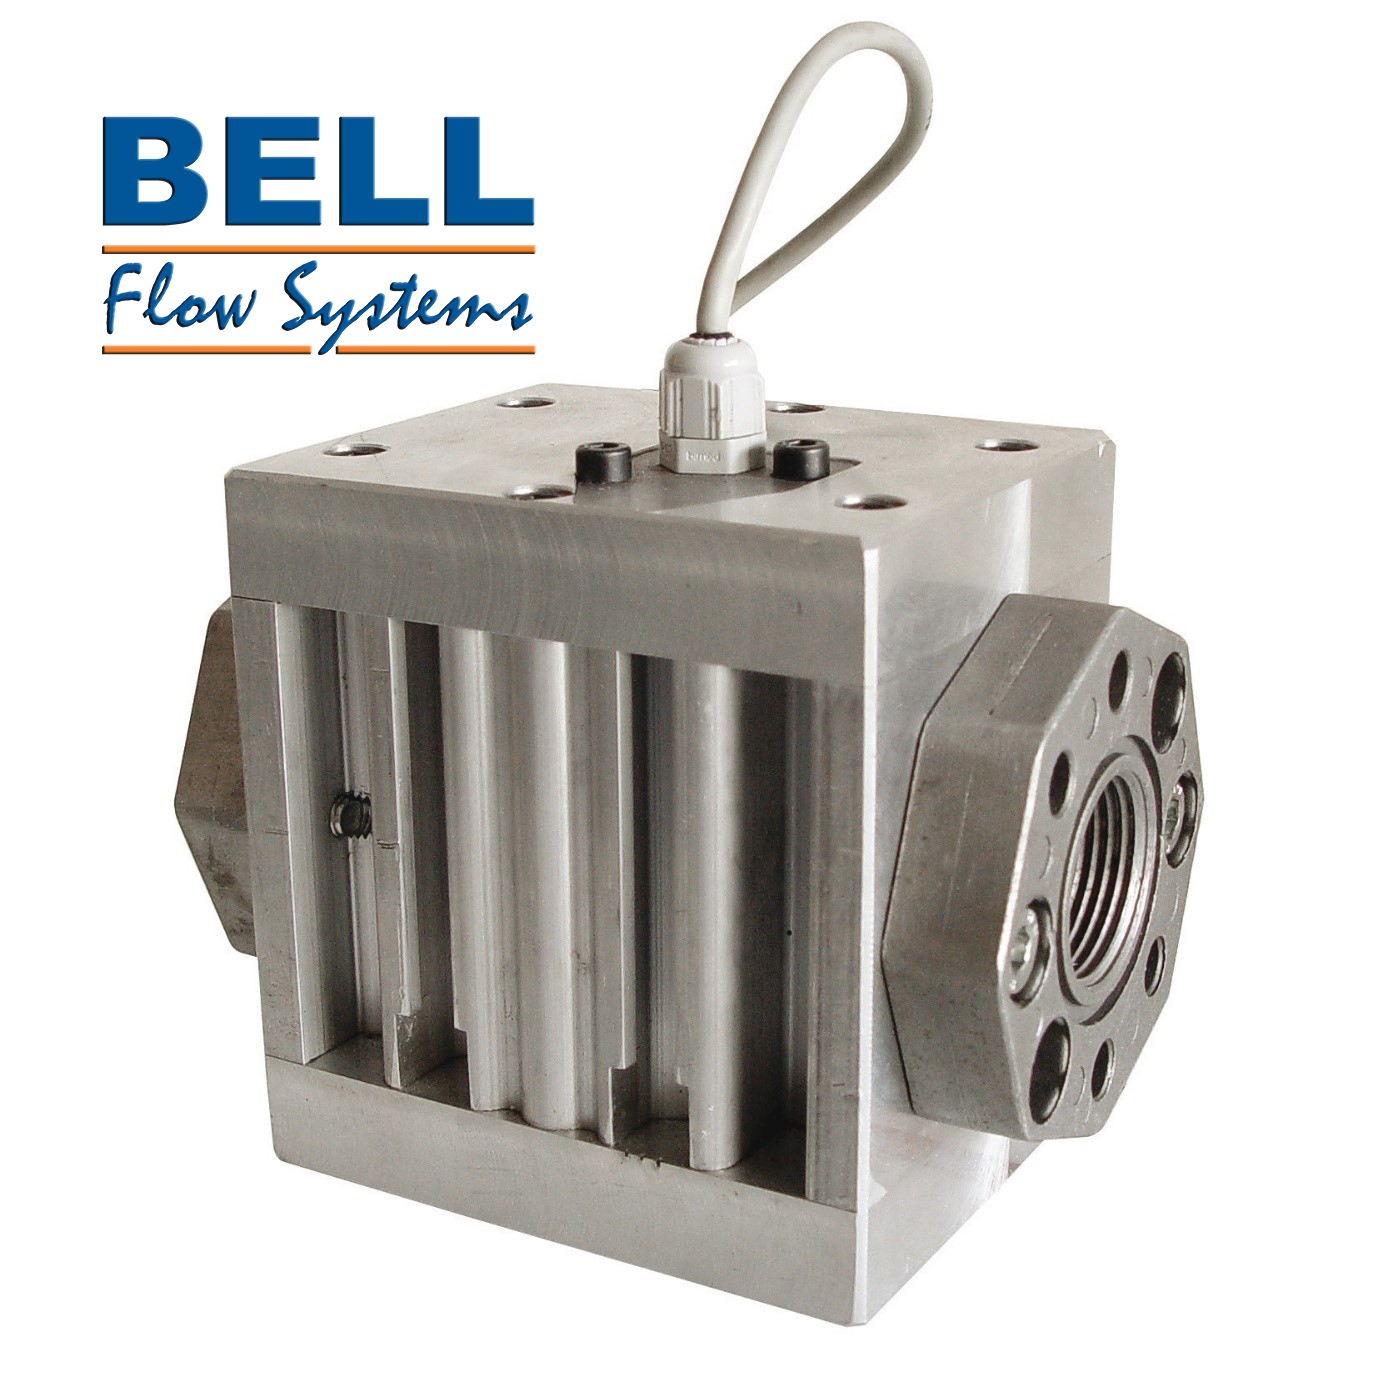 Gespasa MGI Flow Meter Range from Bell Flow Systems